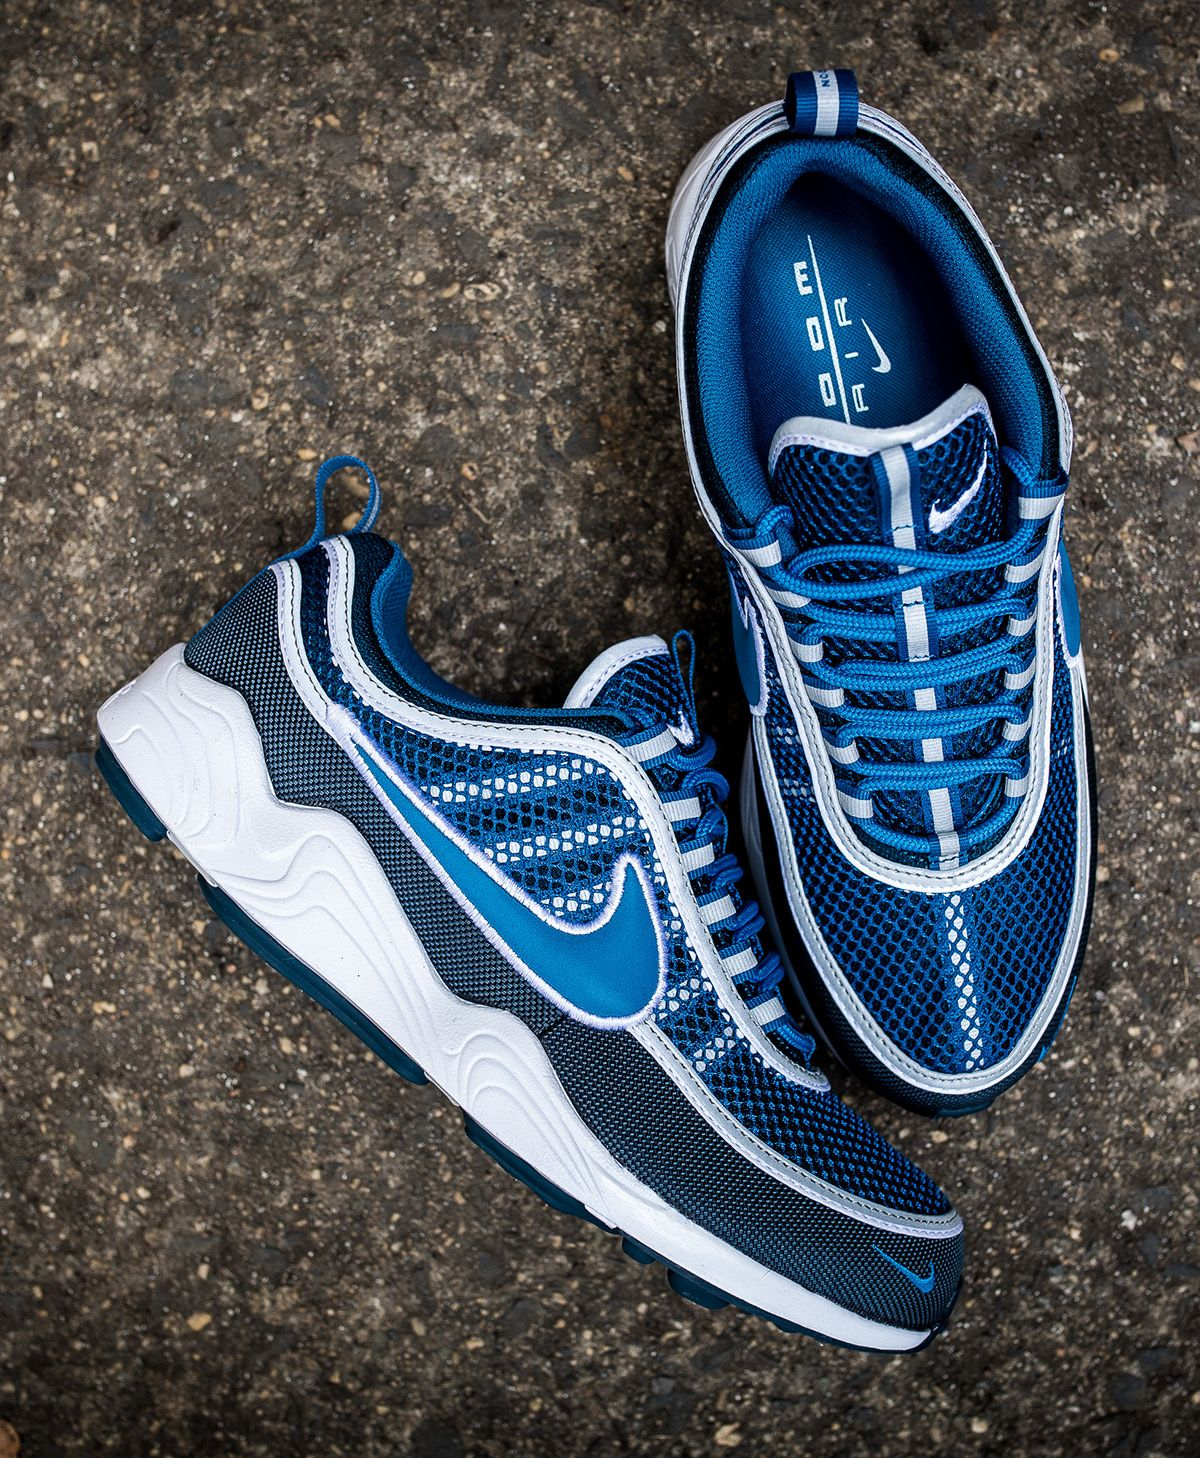 outlet store 58704 3c439 Nike Air Zoom Spiridon  16  Two Releases for July - EU Kicks  Sneaker  Magazine